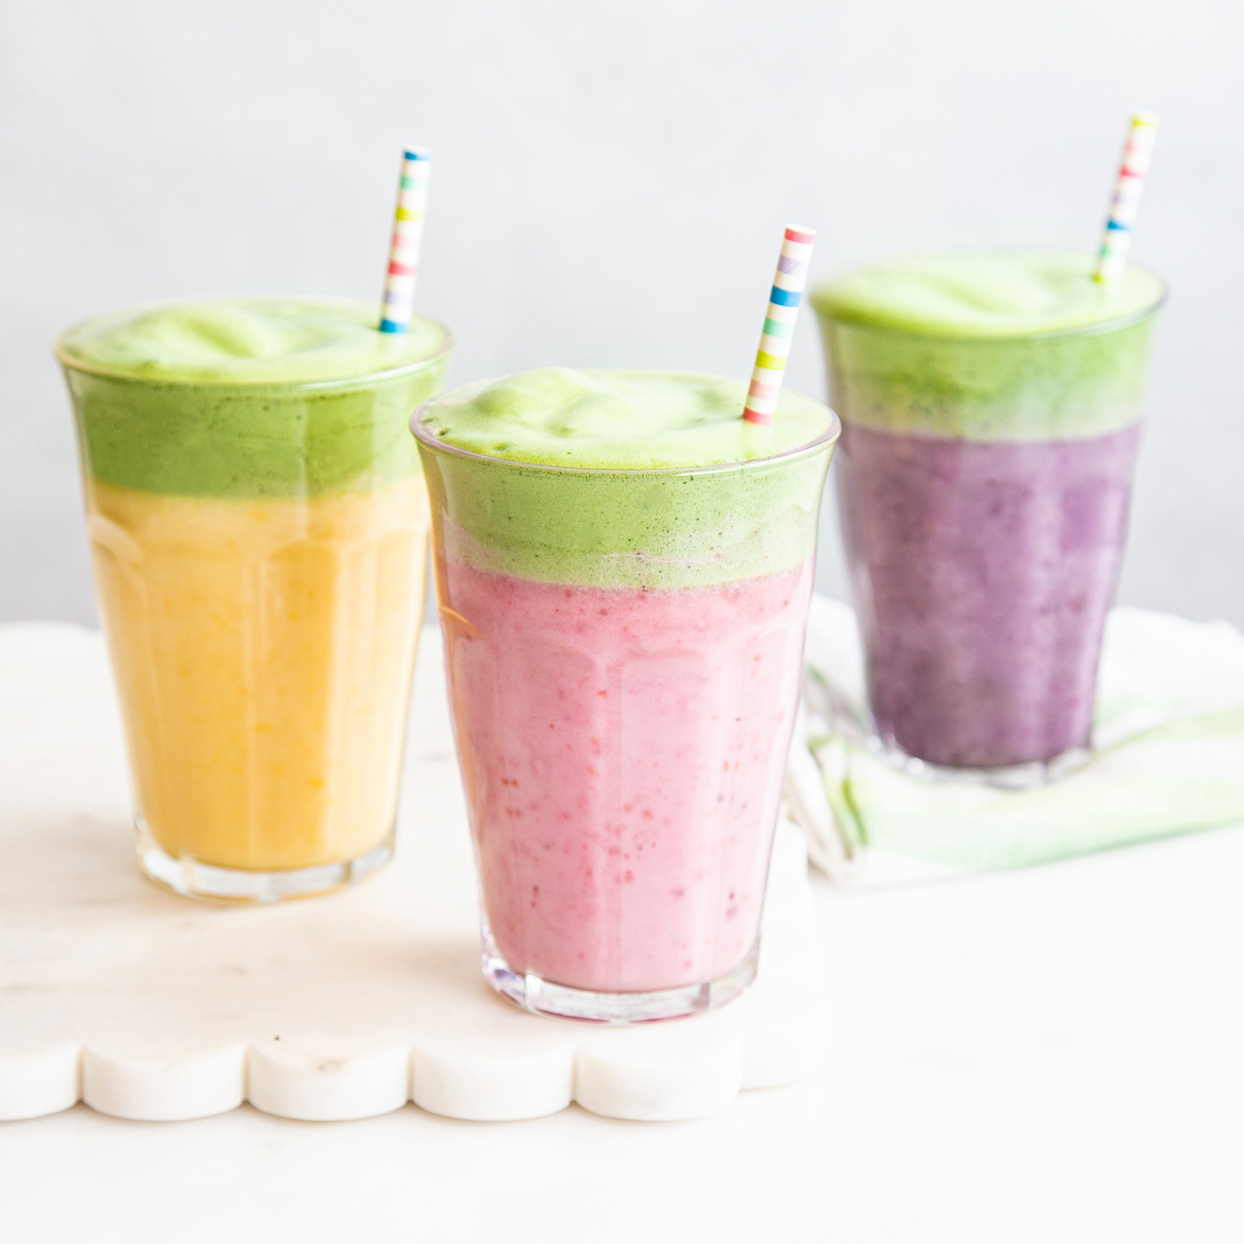 Whipped Matcha Fruit Smoothies